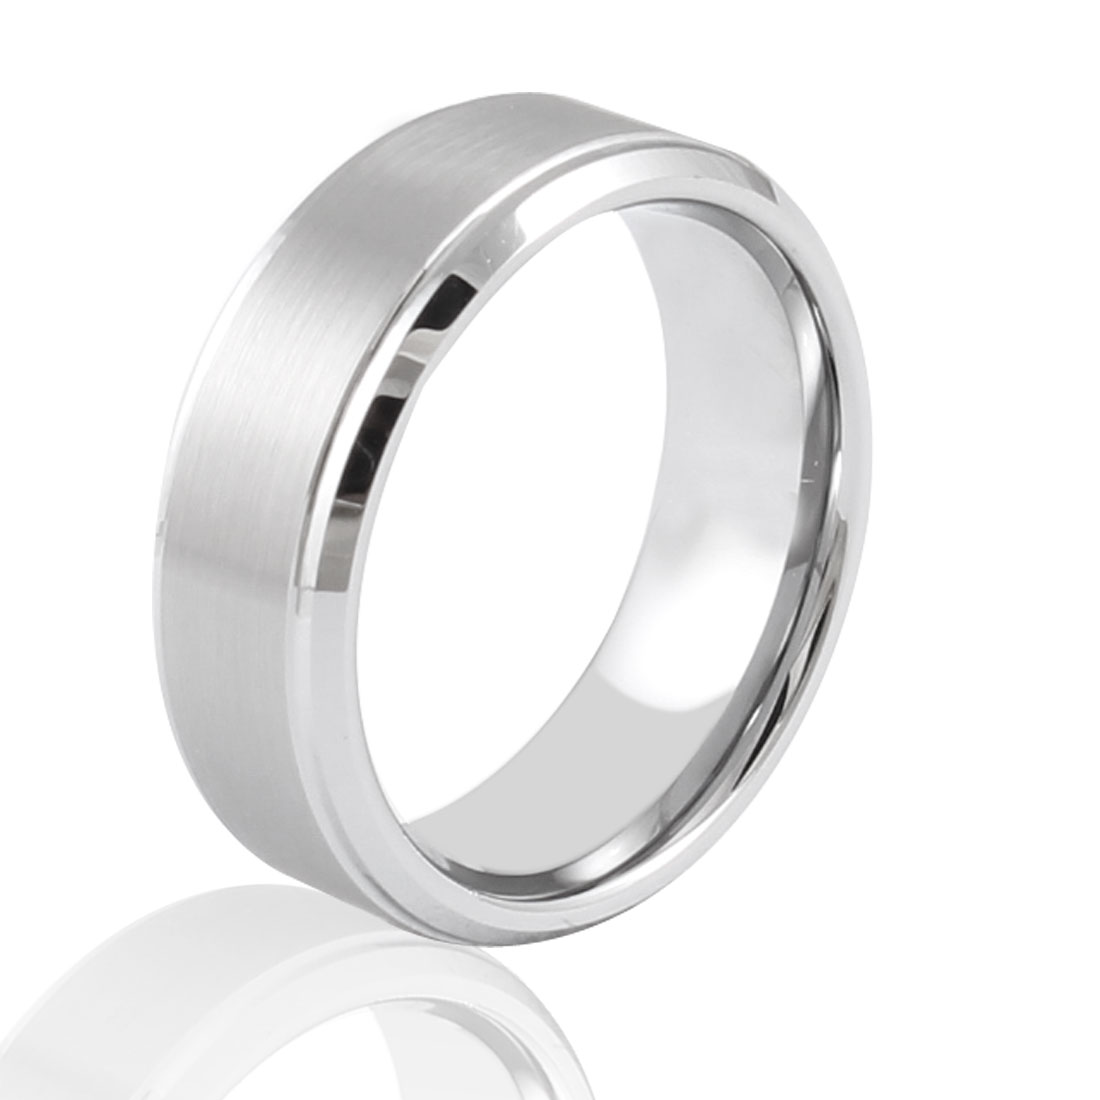 Men 8mm Width Silver Tone Band Ring Fashion Jewelry Us Size 10